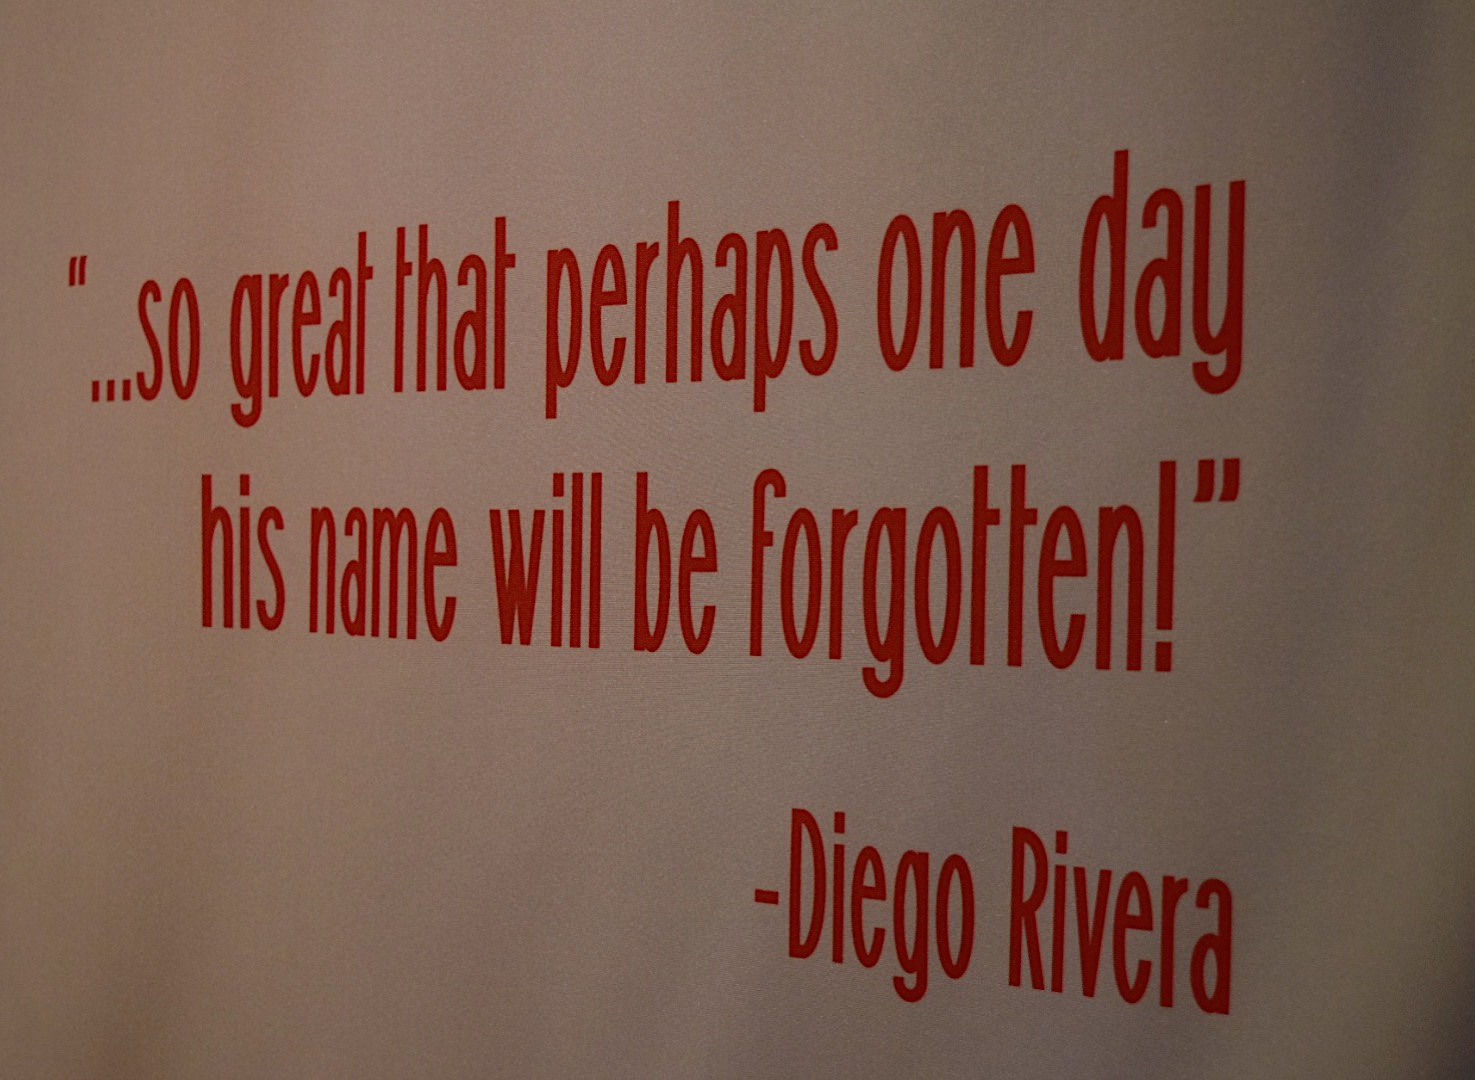 Diego+Rivera%2C+a+famous+artist%2C+quote+featured+in+the+Jose+Guadalupe+gallery.